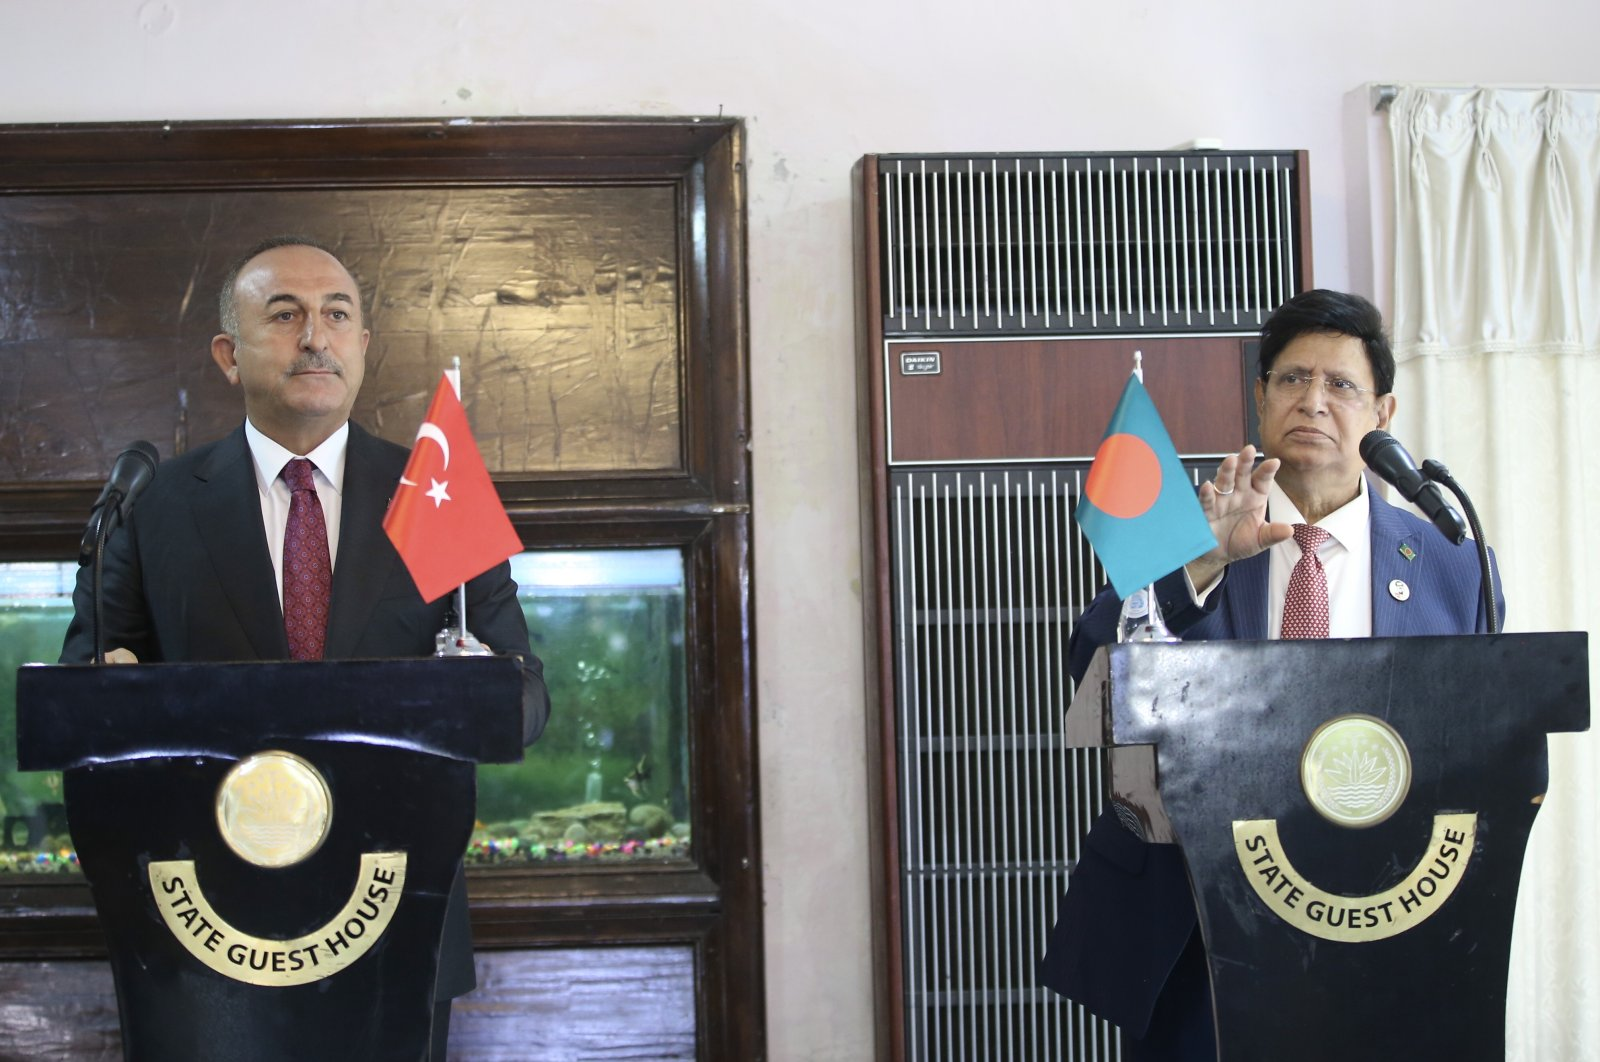 Foreign Minister Mevlüt Çavuşoğlu in a joint press conference with his counterpart A.K. Abdul Momen in Dhaka, Bangladesh, Dec. 23, 2020 (AA Photo)